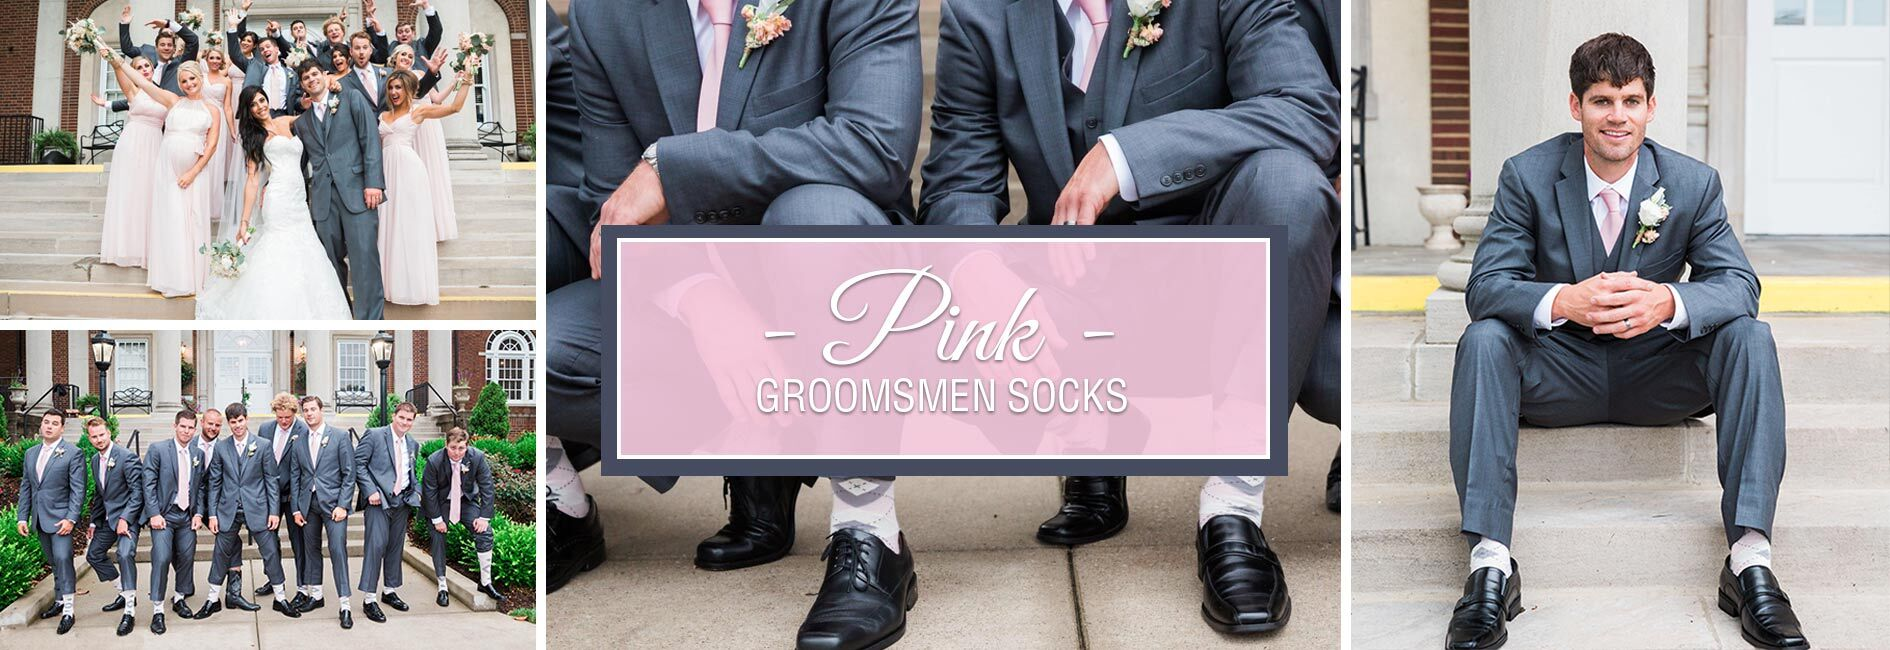 Pink Groomsmen Wedding Socks Banner